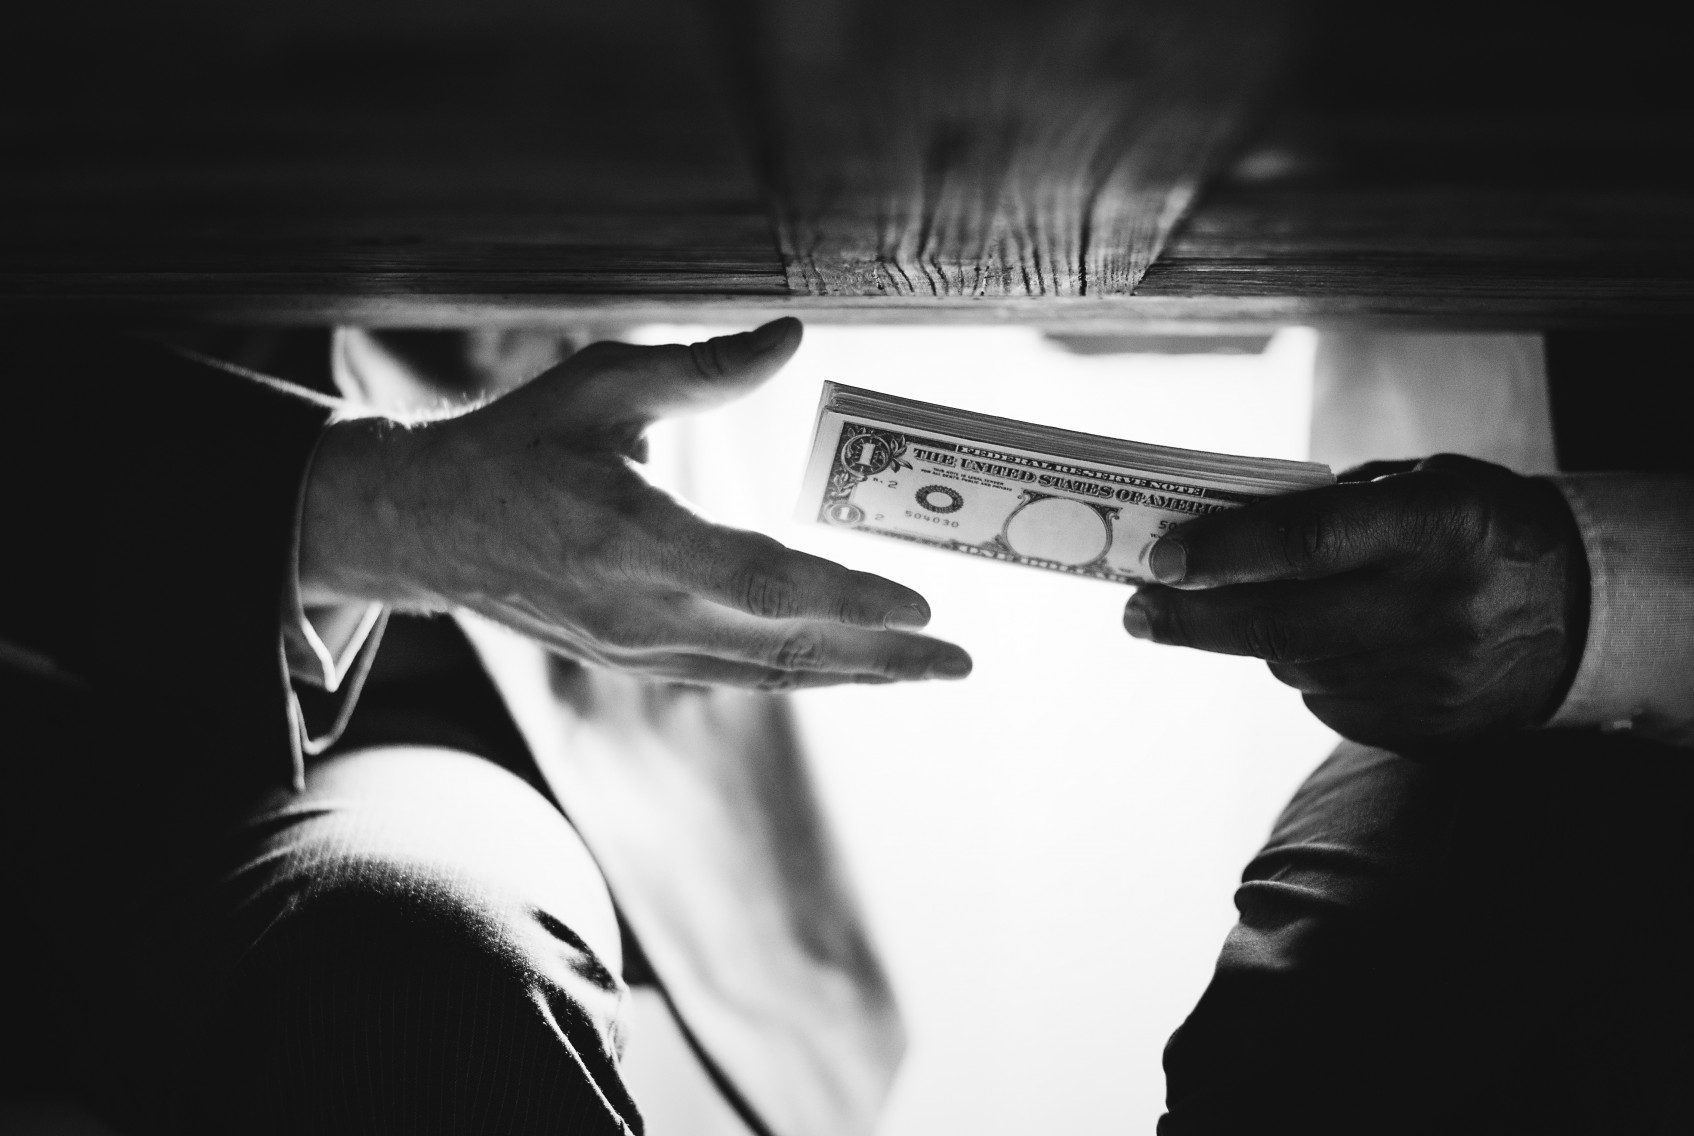 Hands passing money under table corruption bribery